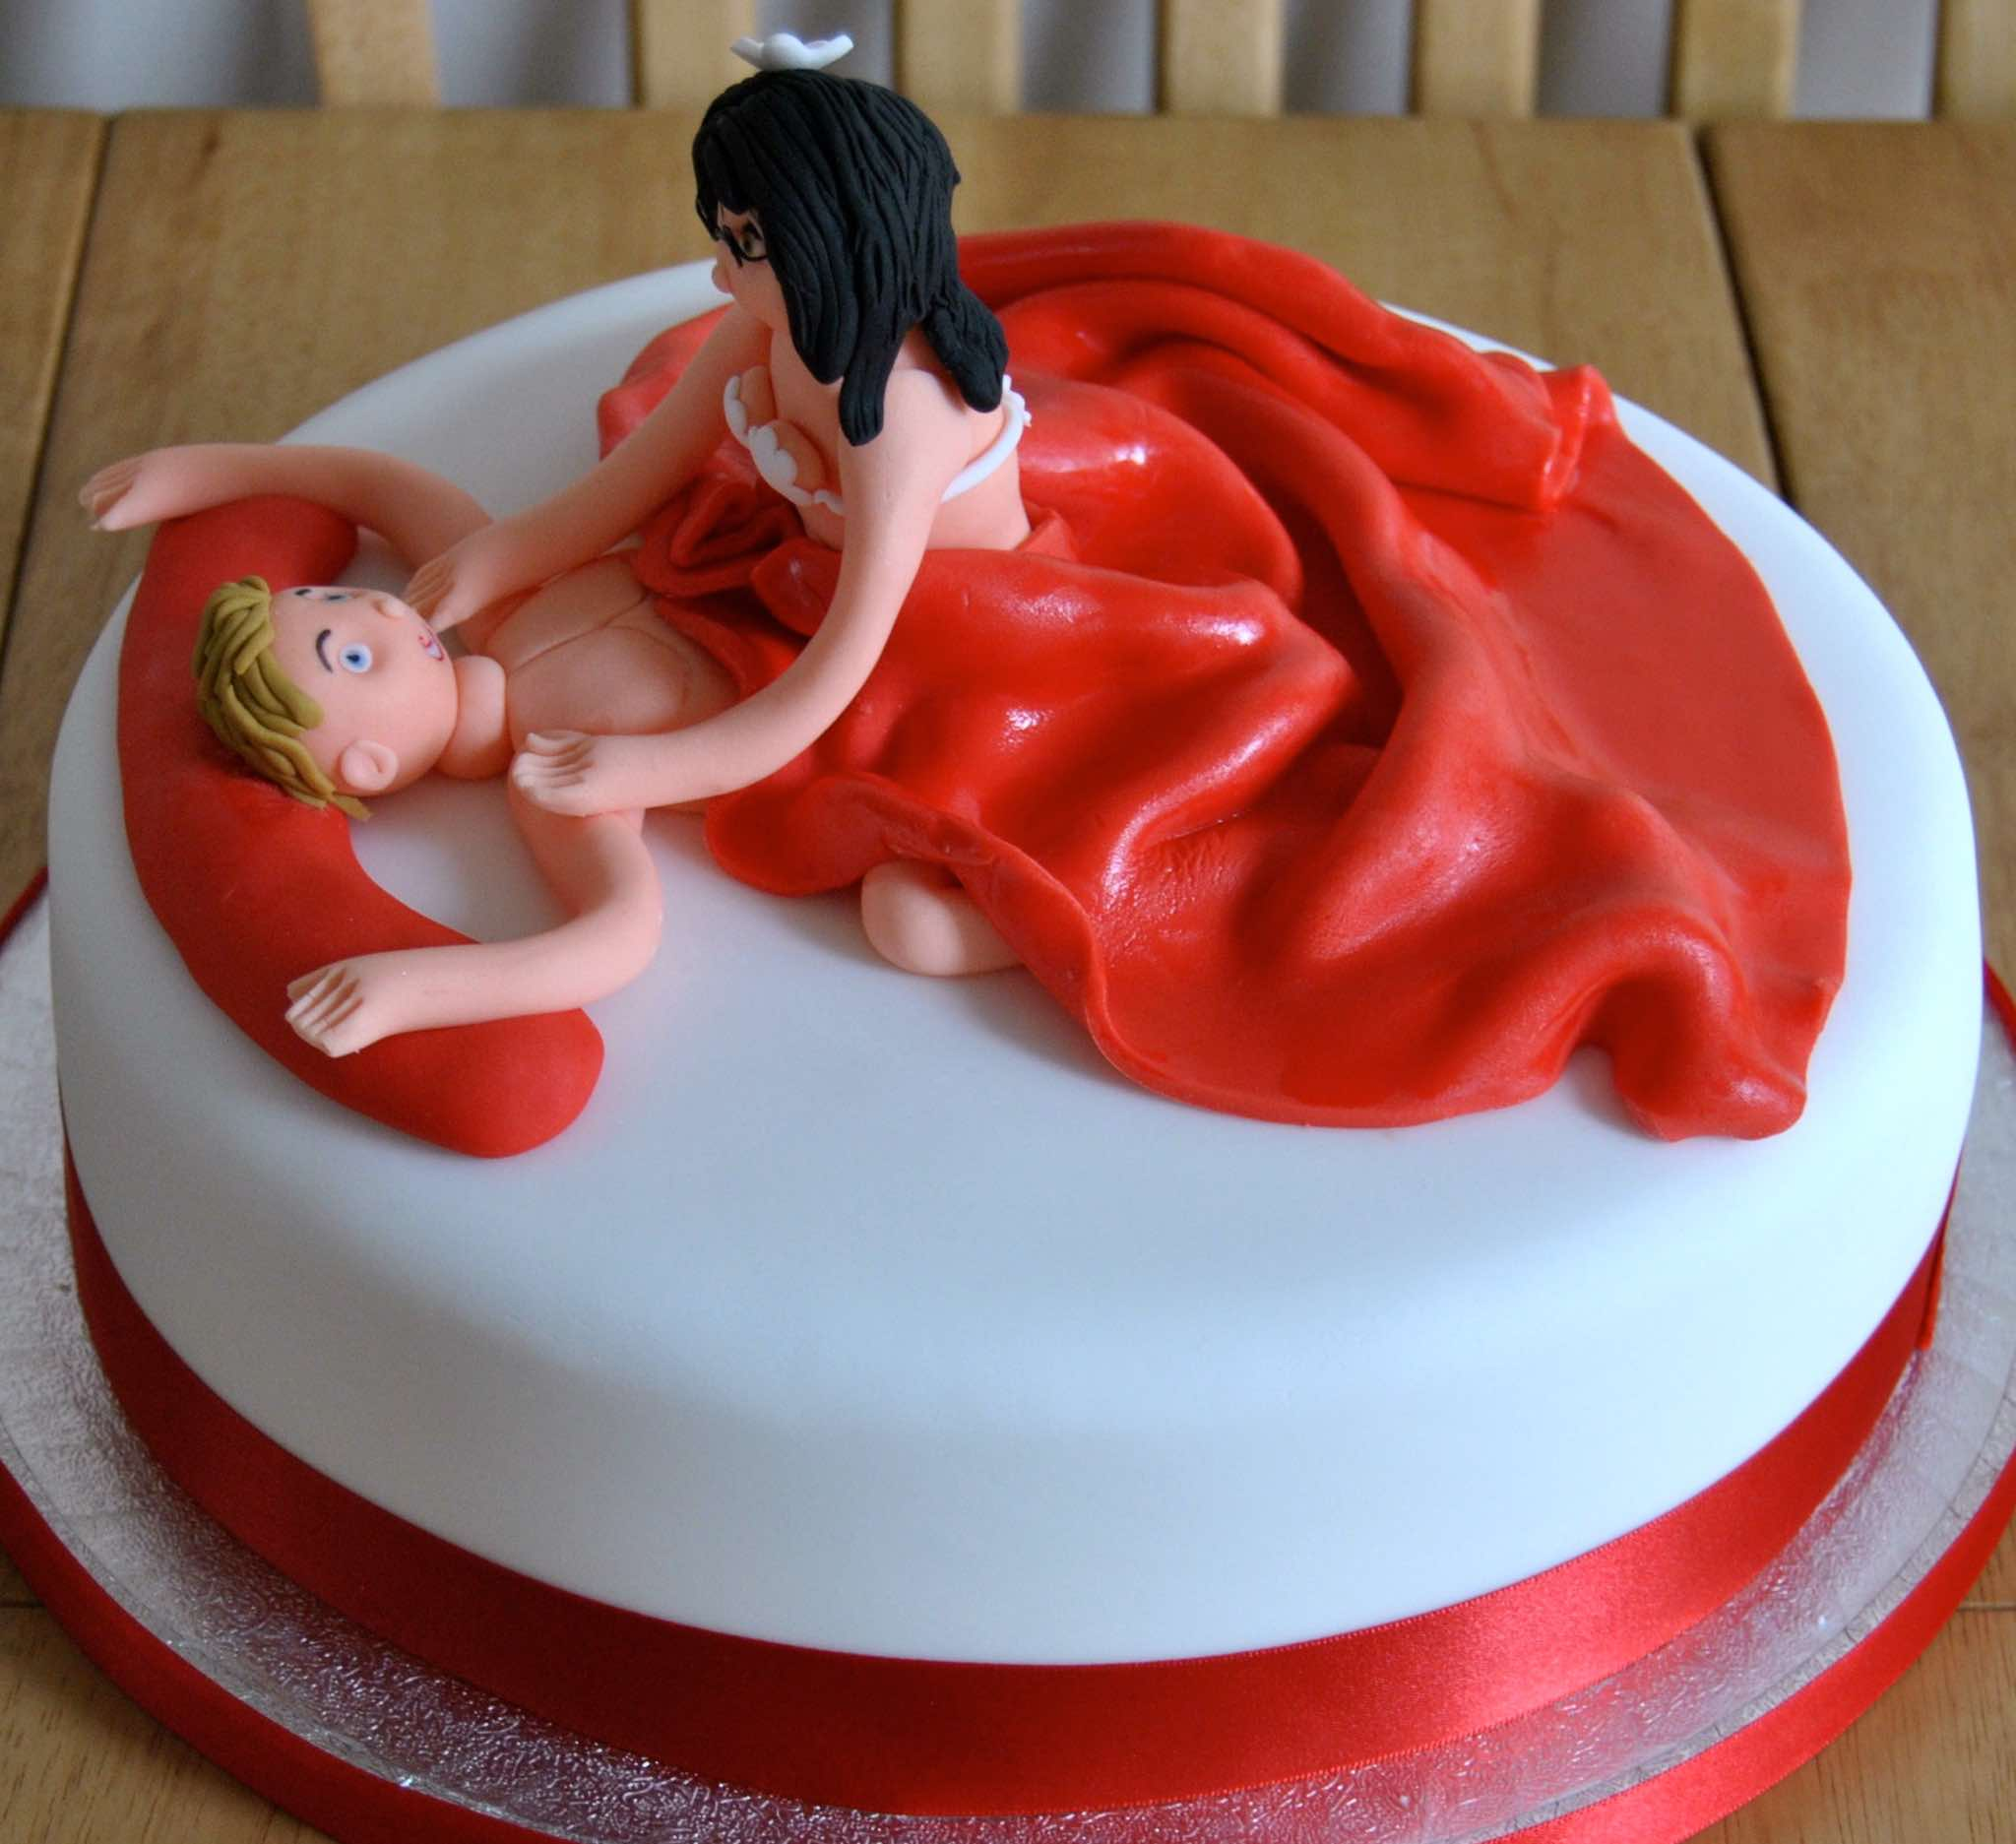 Making erotic cakes